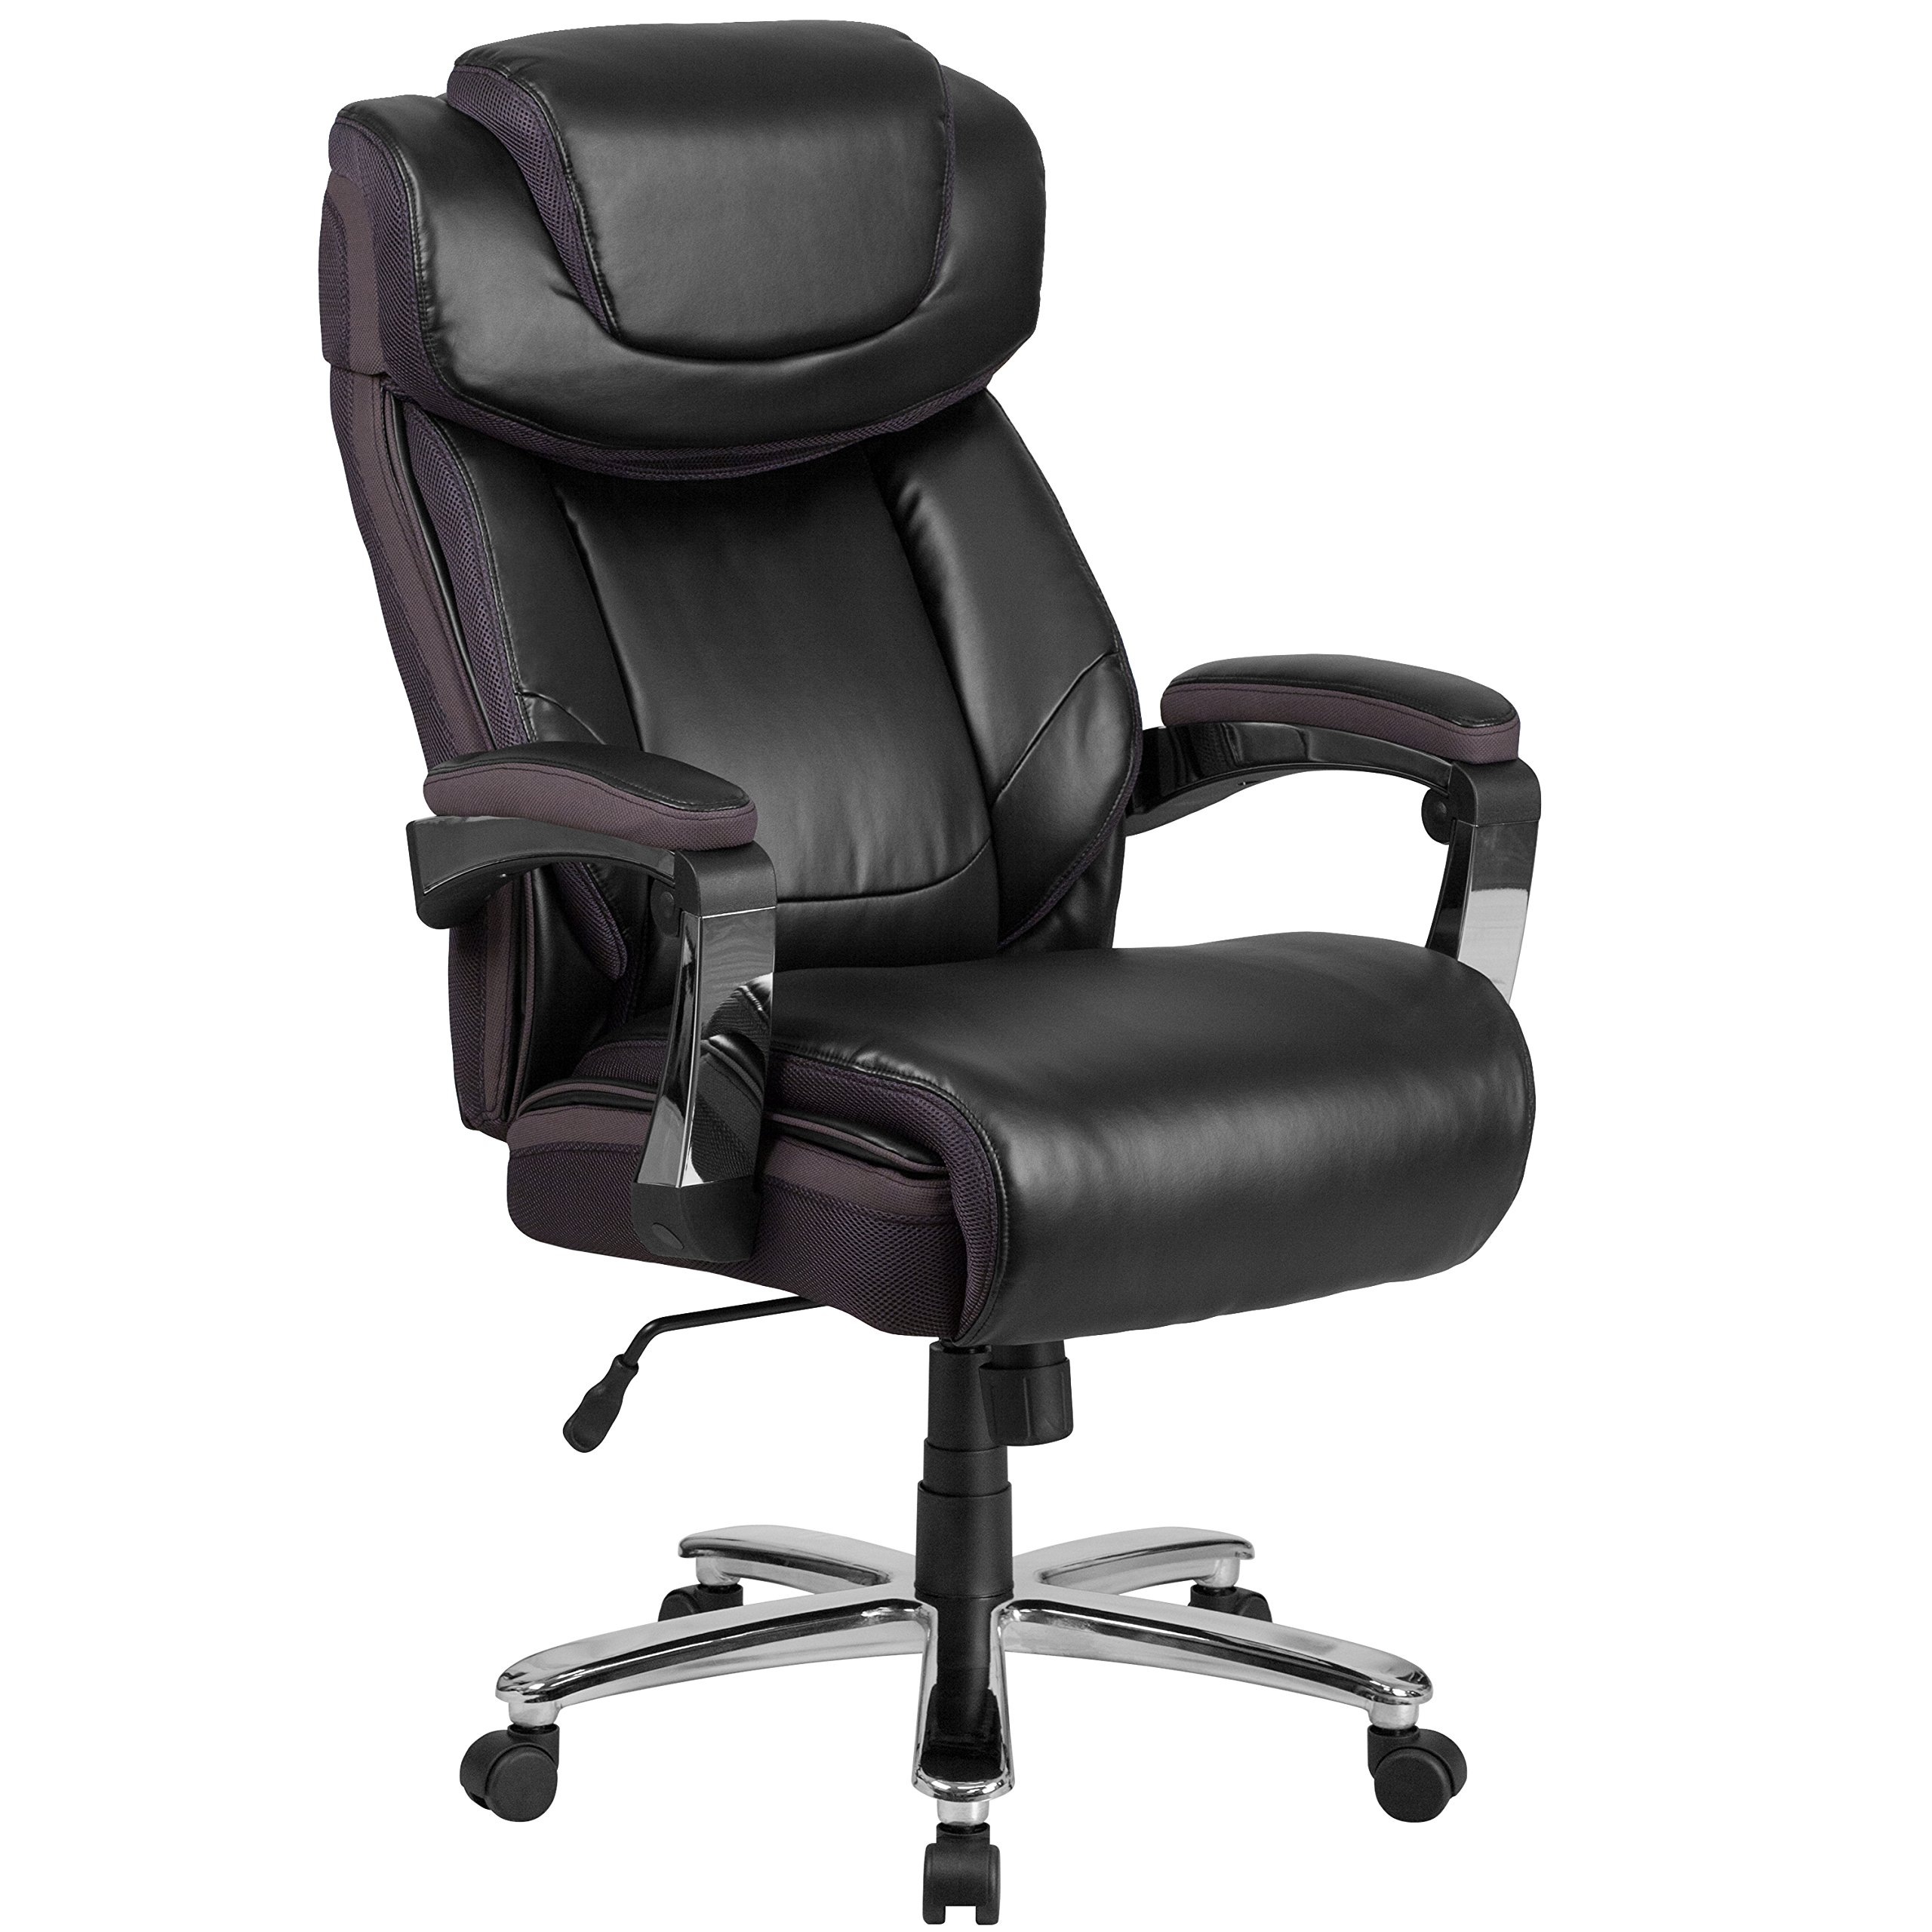 Flash Furniture HERCULES Series Big & Tall 500 lb. Rated Black Leather Executive Swivel Ergonomic Office Chair with Adjustable Headrest by Flash Furniture